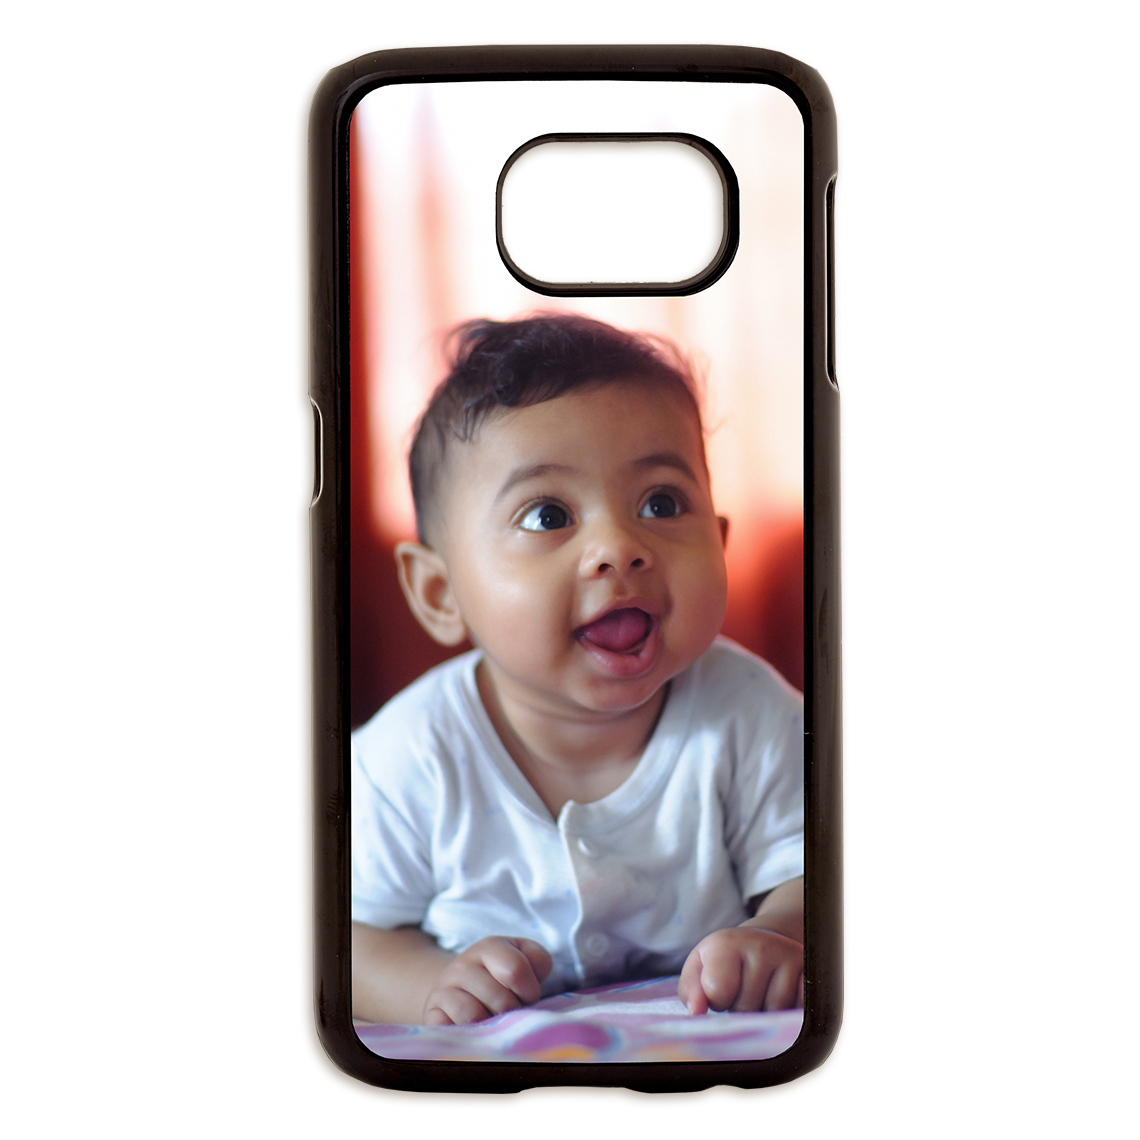 Icon Samsung Galaxy phone cases